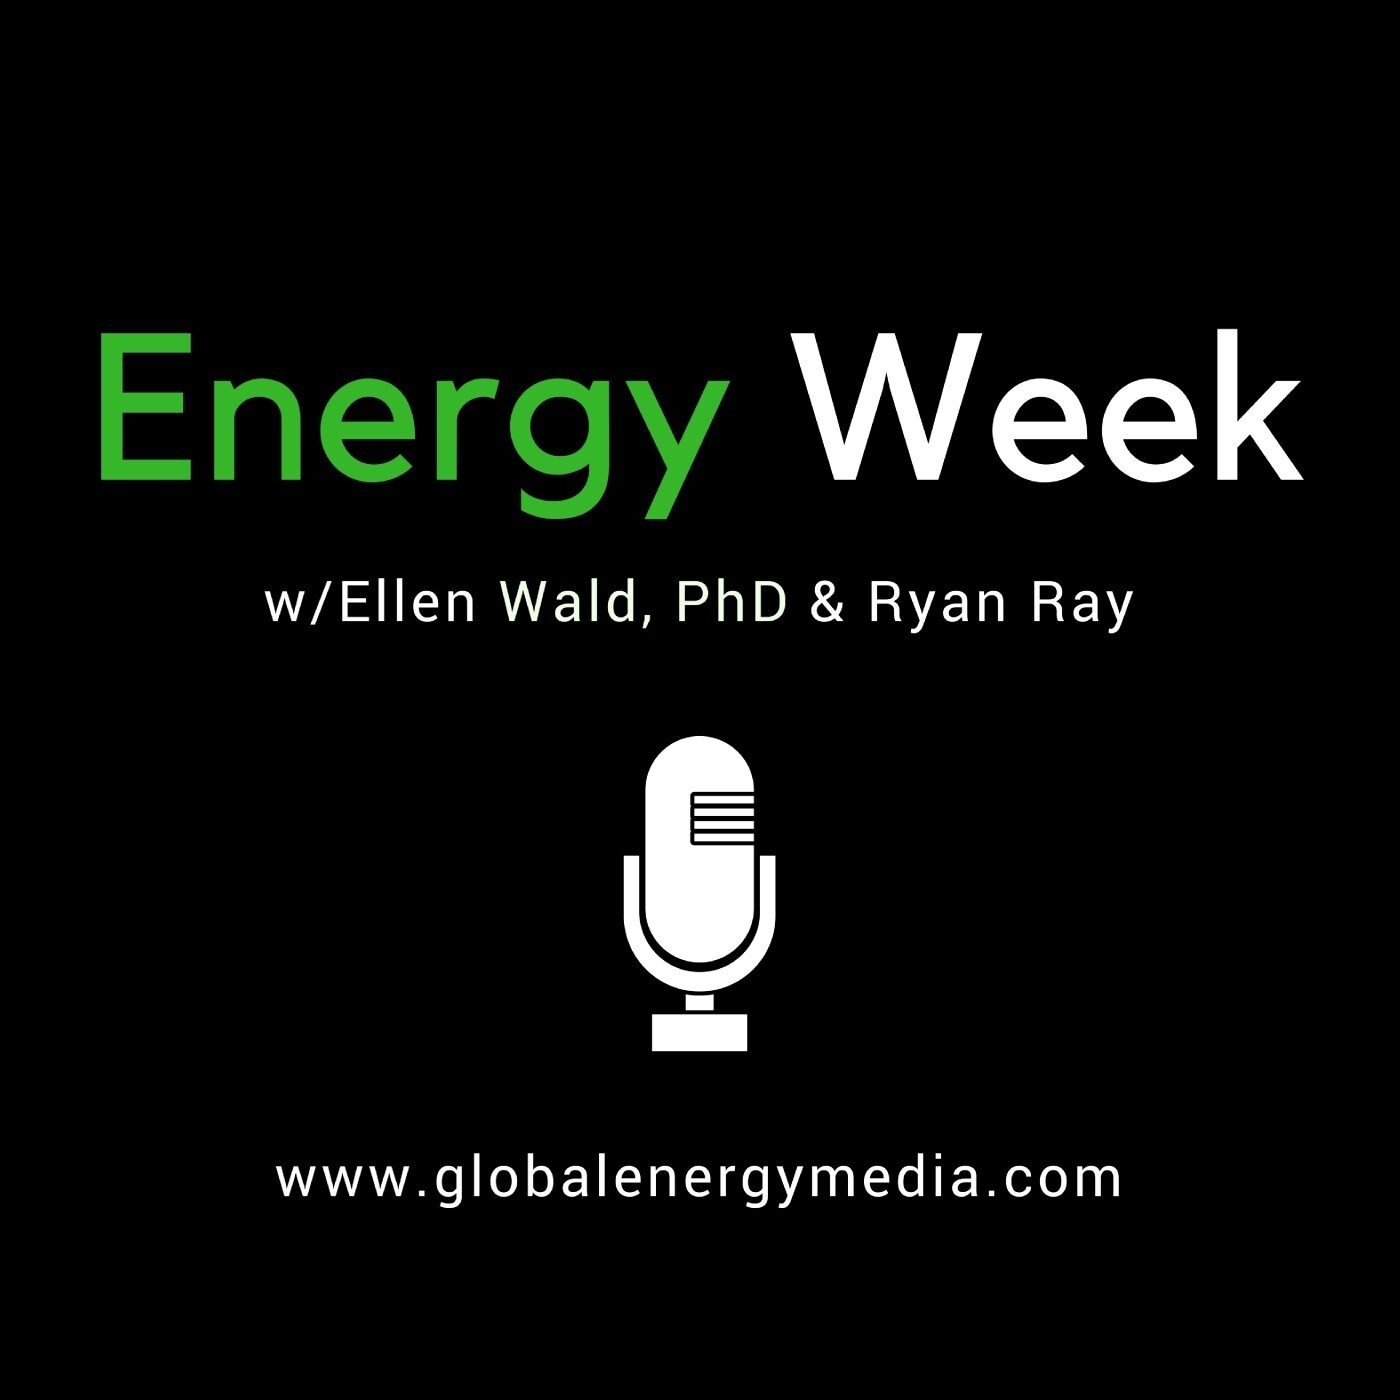 Episode 128 - South's Economy Outperforms Nation | OPEC+ Faces Growing Pressure | Oil prices decline after China e